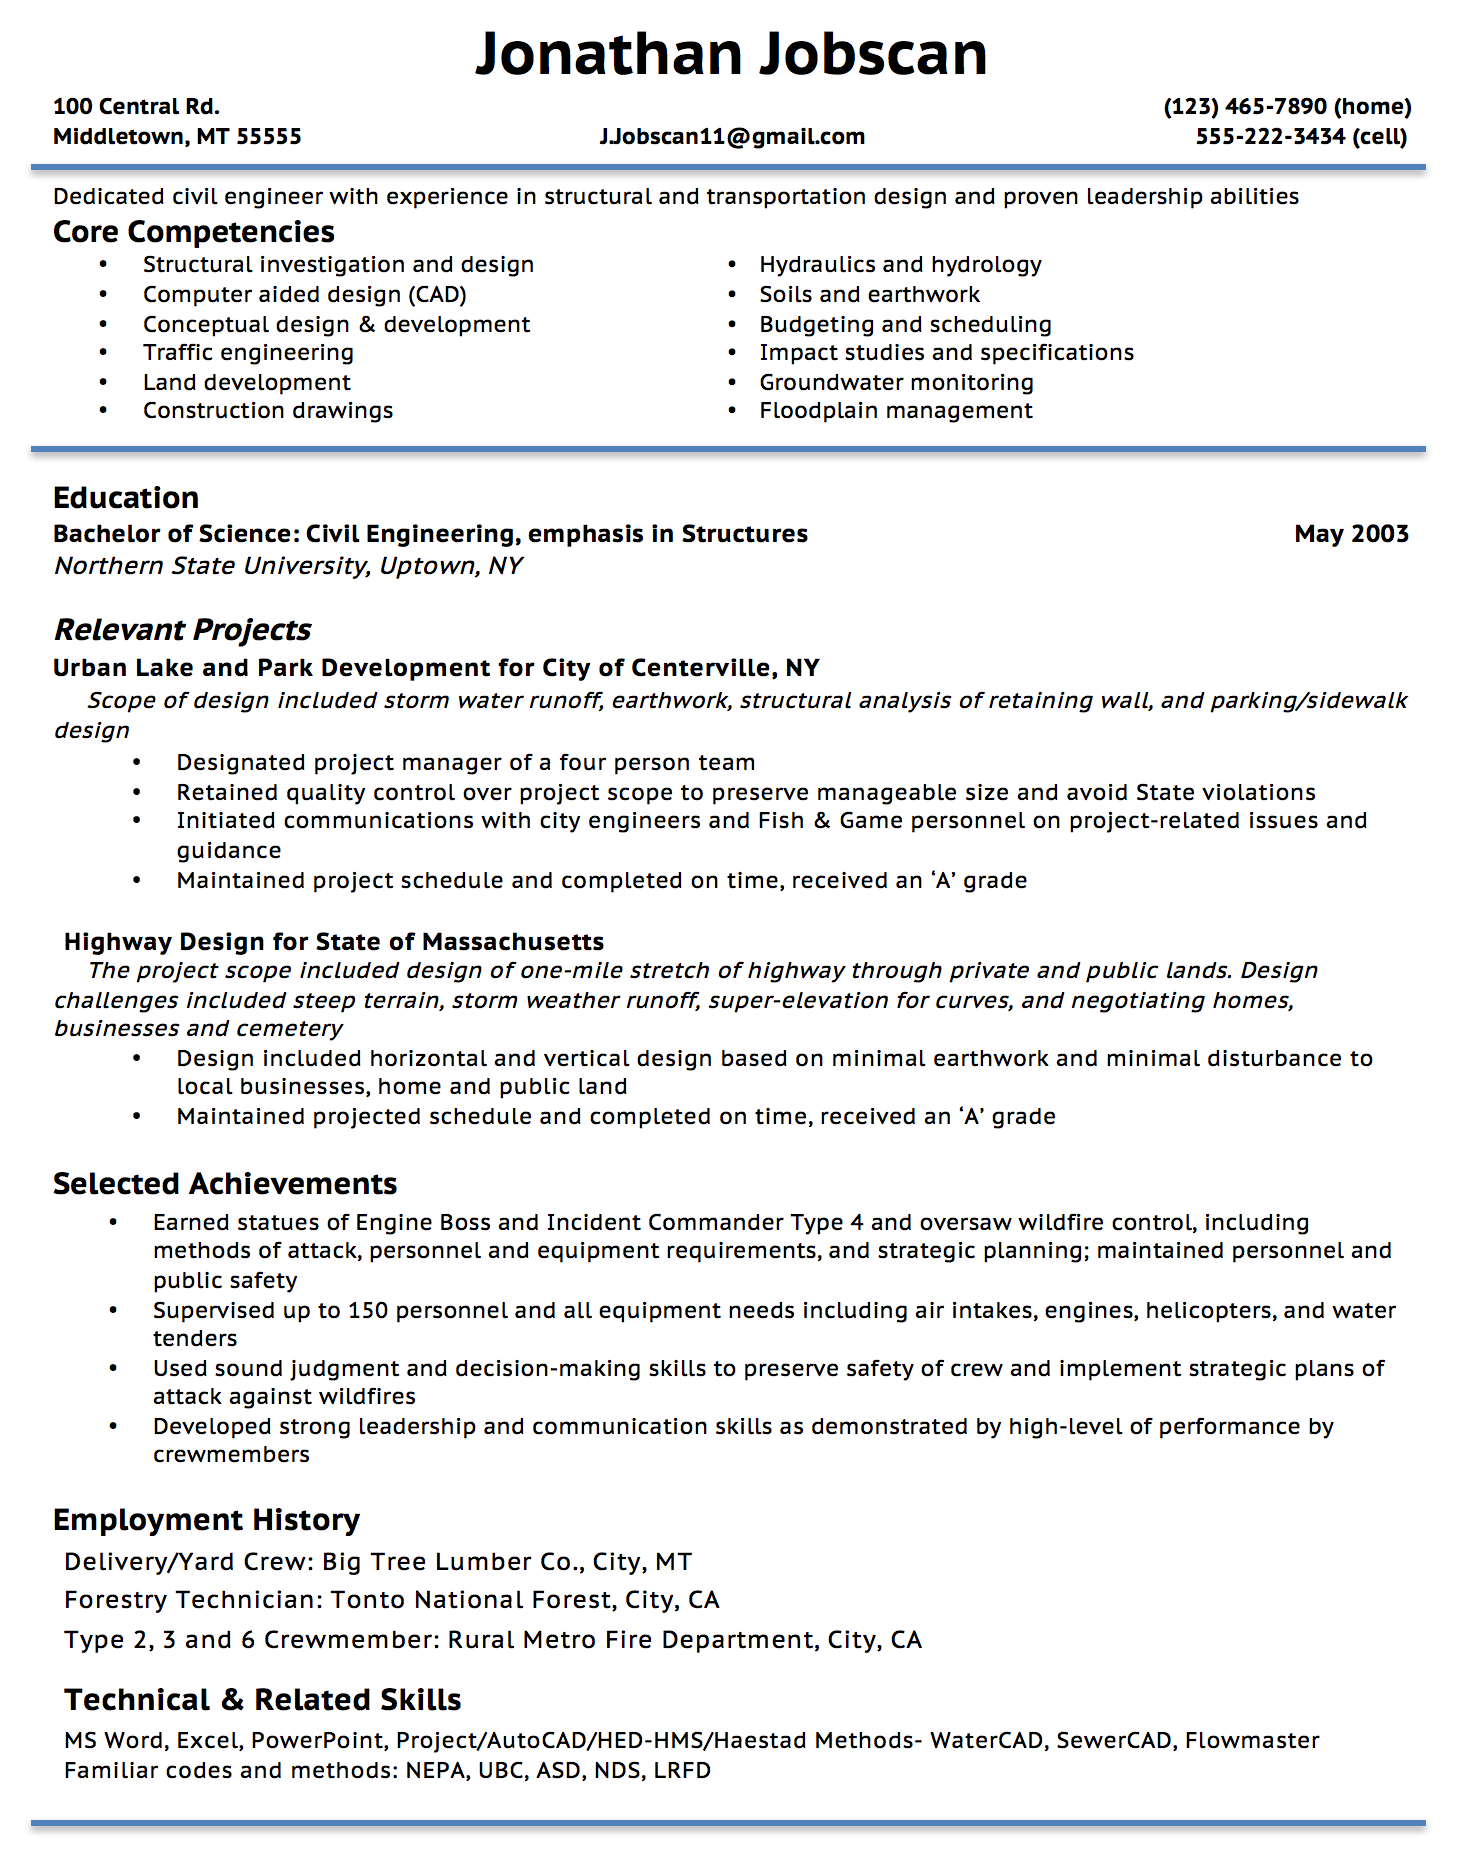 Opposenewapstandardsus  Picturesque Resume Writing Guide  Jobscan With Heavenly Example Of A Functional Resume Format With Cool Secretary Resume Sample Also Patient Care Coordinator Resume In Addition Resume Class And How Make Resume As Well As Resume Qualifications List Additionally Send Resume Email From Jobscanco With Opposenewapstandardsus  Heavenly Resume Writing Guide  Jobscan With Cool Example Of A Functional Resume Format And Picturesque Secretary Resume Sample Also Patient Care Coordinator Resume In Addition Resume Class From Jobscanco